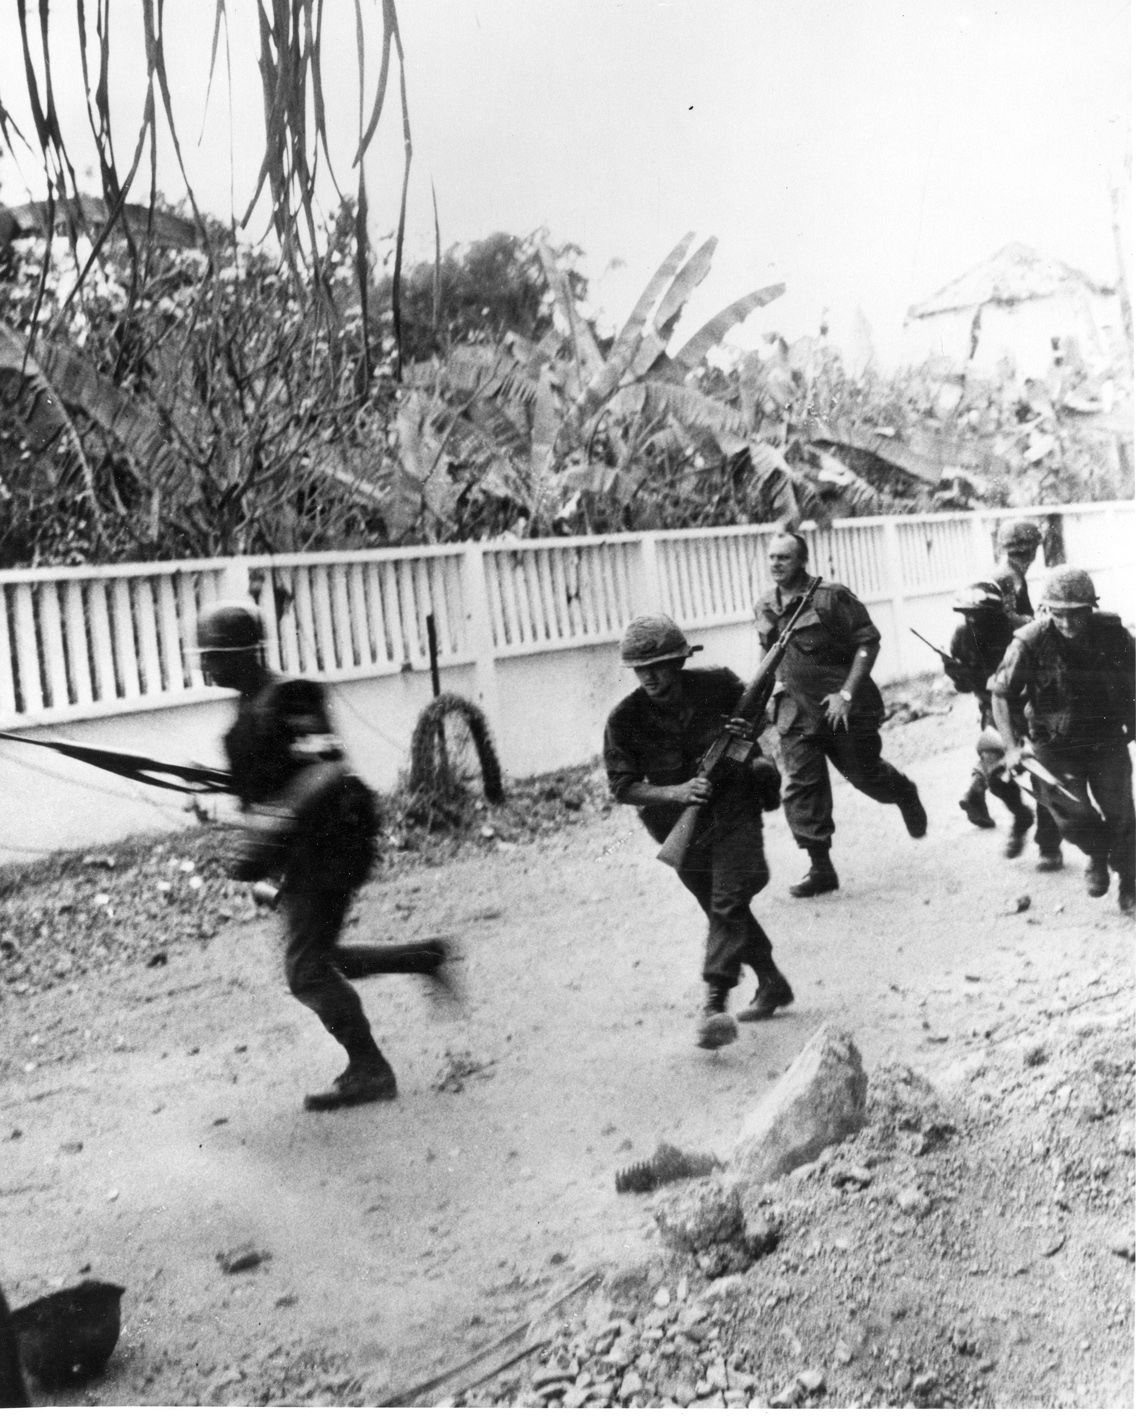 vietnam war war times vietnam war and vietnam american iers during the tet offensive saigon 1968 vietnam war